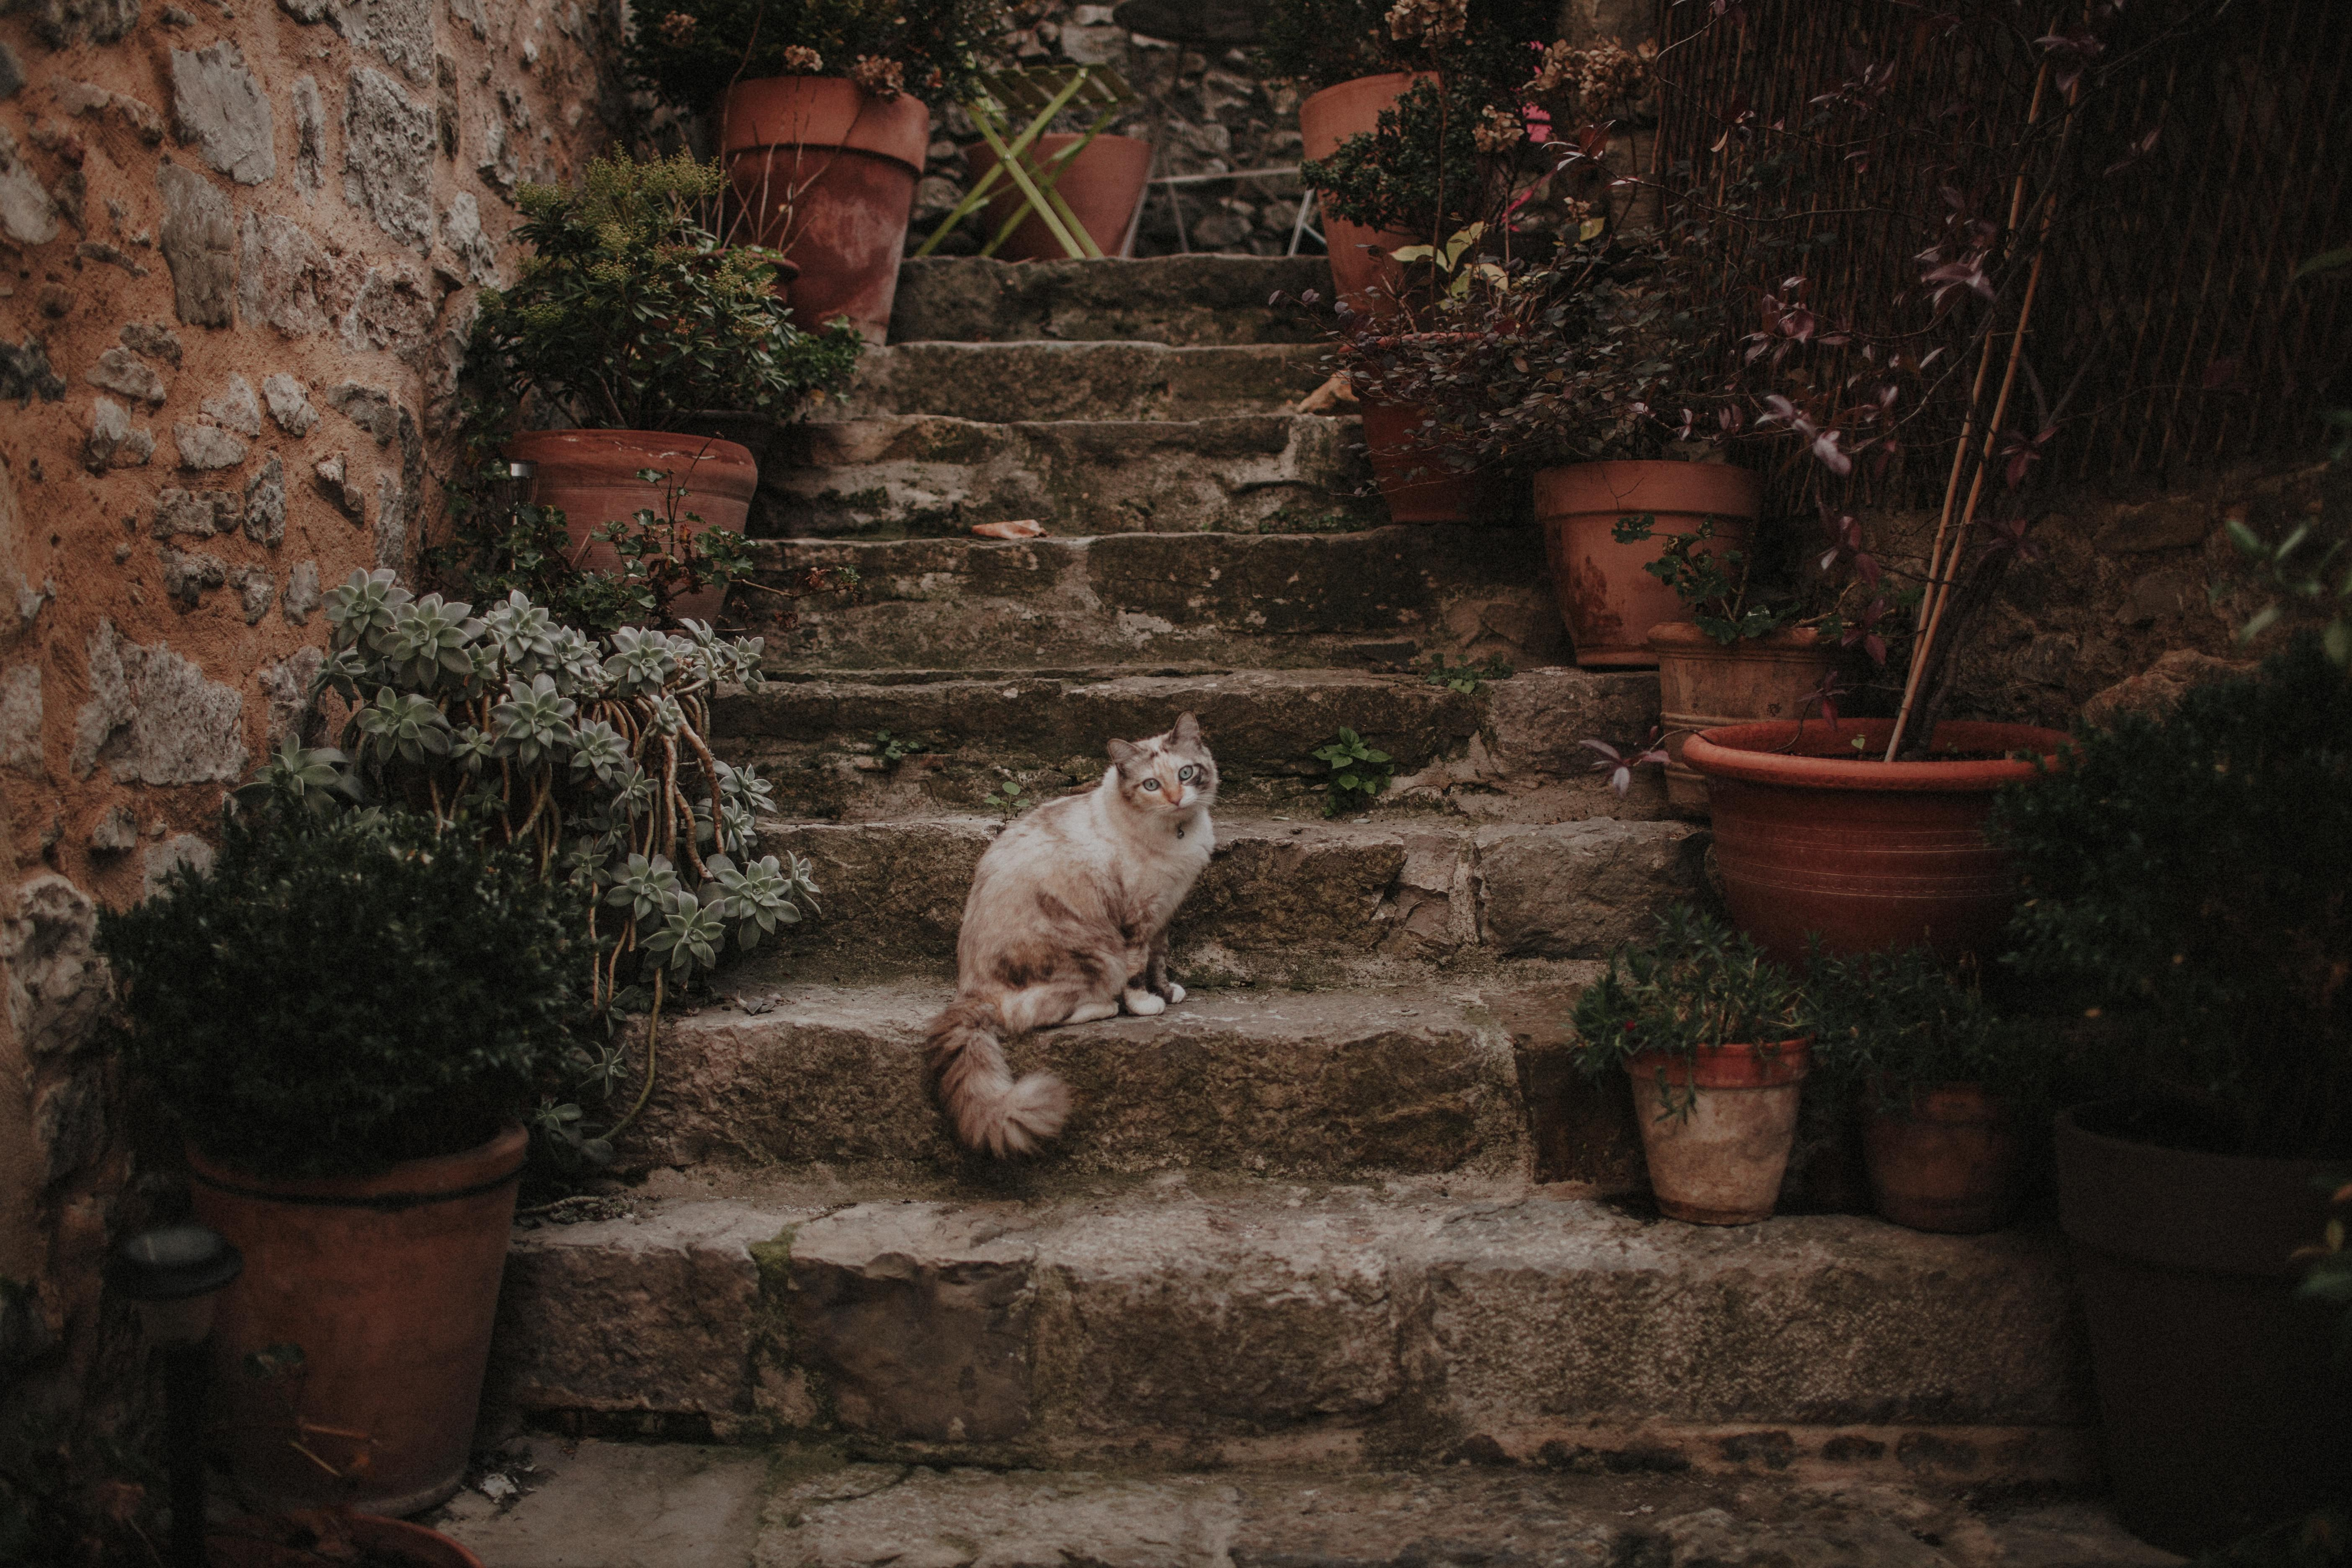 cat sitting on concrete stairs